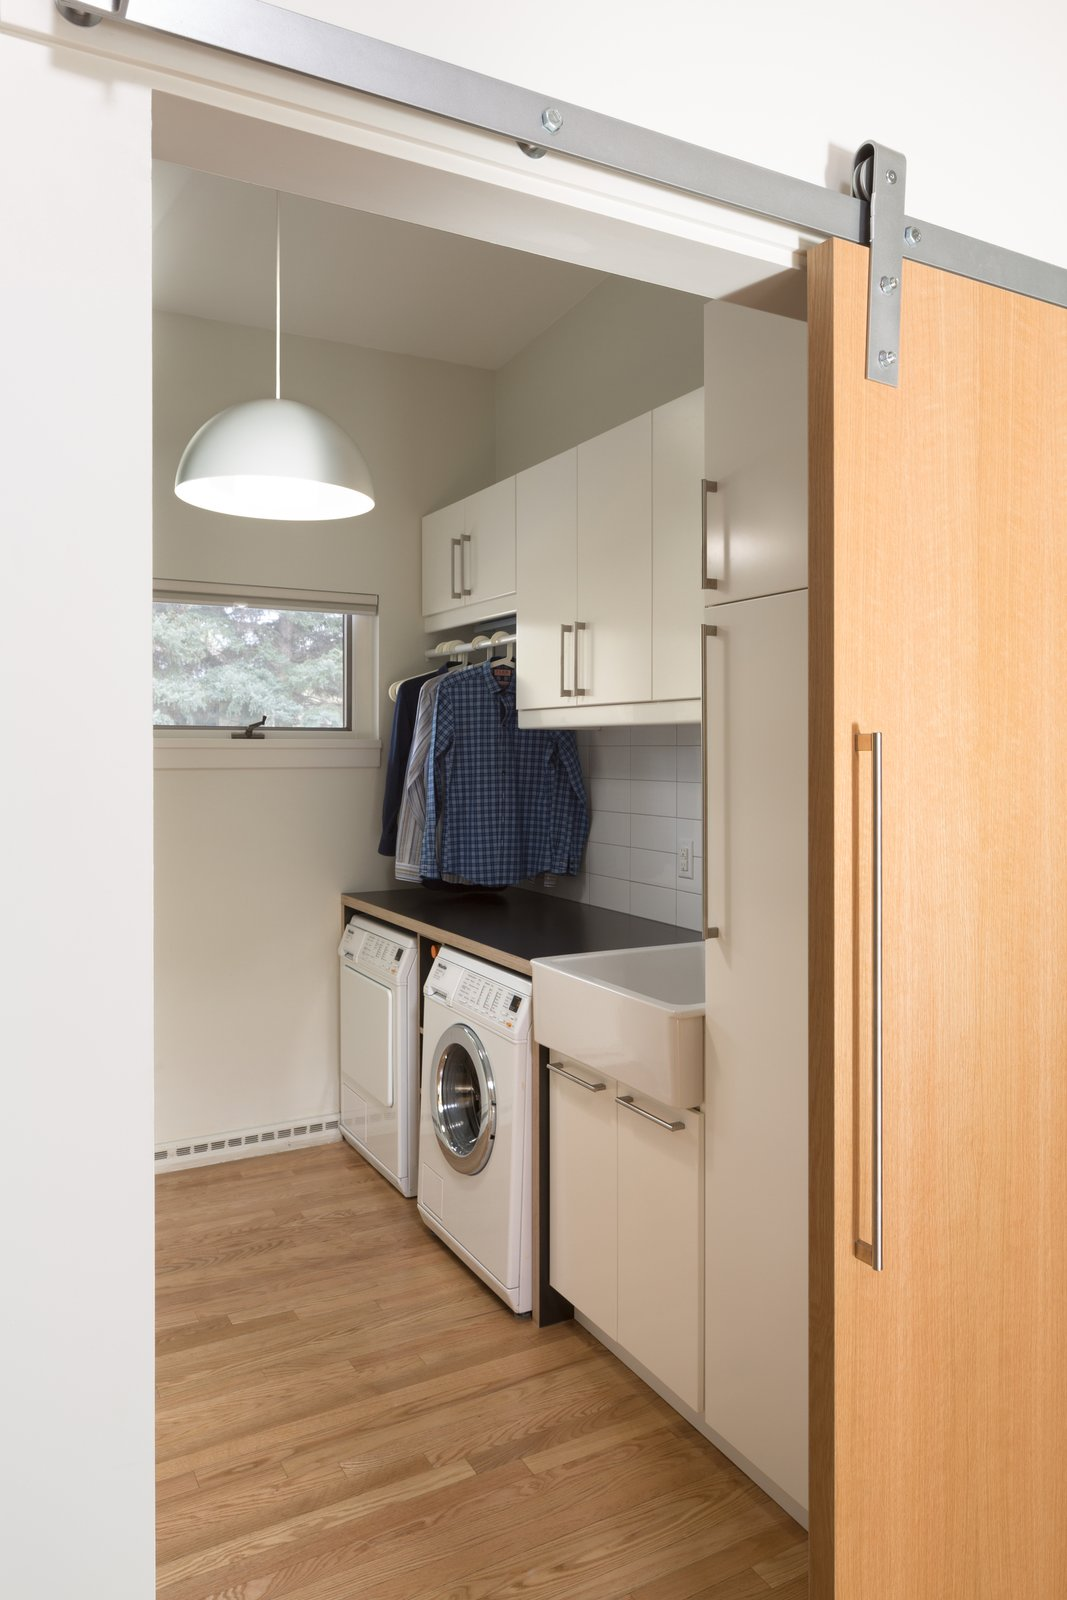 Laundry Room, Side-by-Side, Laminate Counter, and White Cabinet Laundry Room. Ikea build out with a custom made Melamine waterfall countertop over washer and dryer. Interior barn door is white oak slab with low luster natural finish.   Langley_Hawthorne Residence by Design Platform